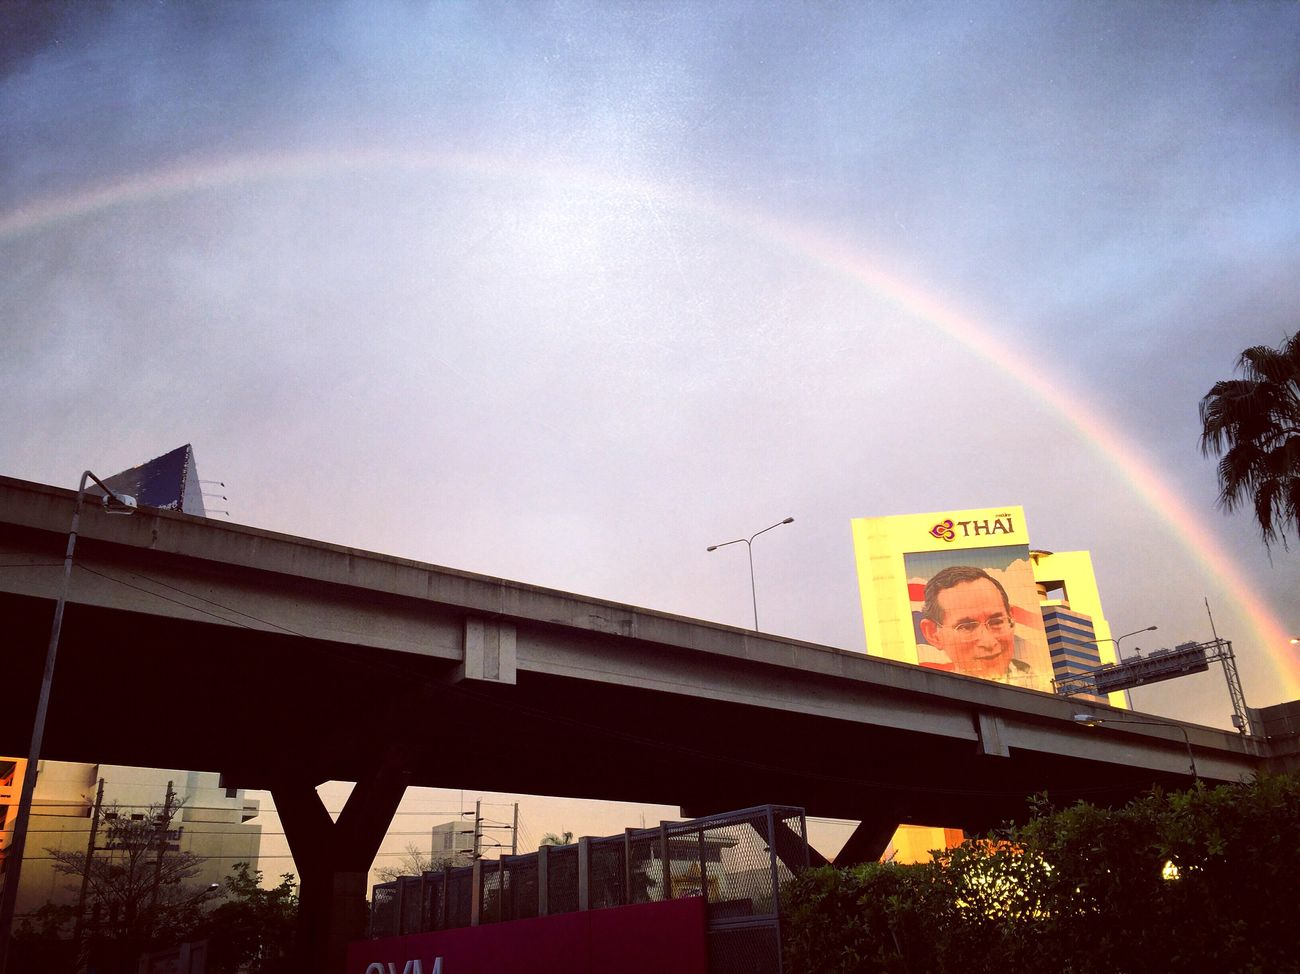 The King and Rainbow 🇹🇭🇹🇭🇹🇭🌈🌈🌈❤️ Somewhere Over The Rainbow After The Rain Rainbow King Thailand Long Live The King